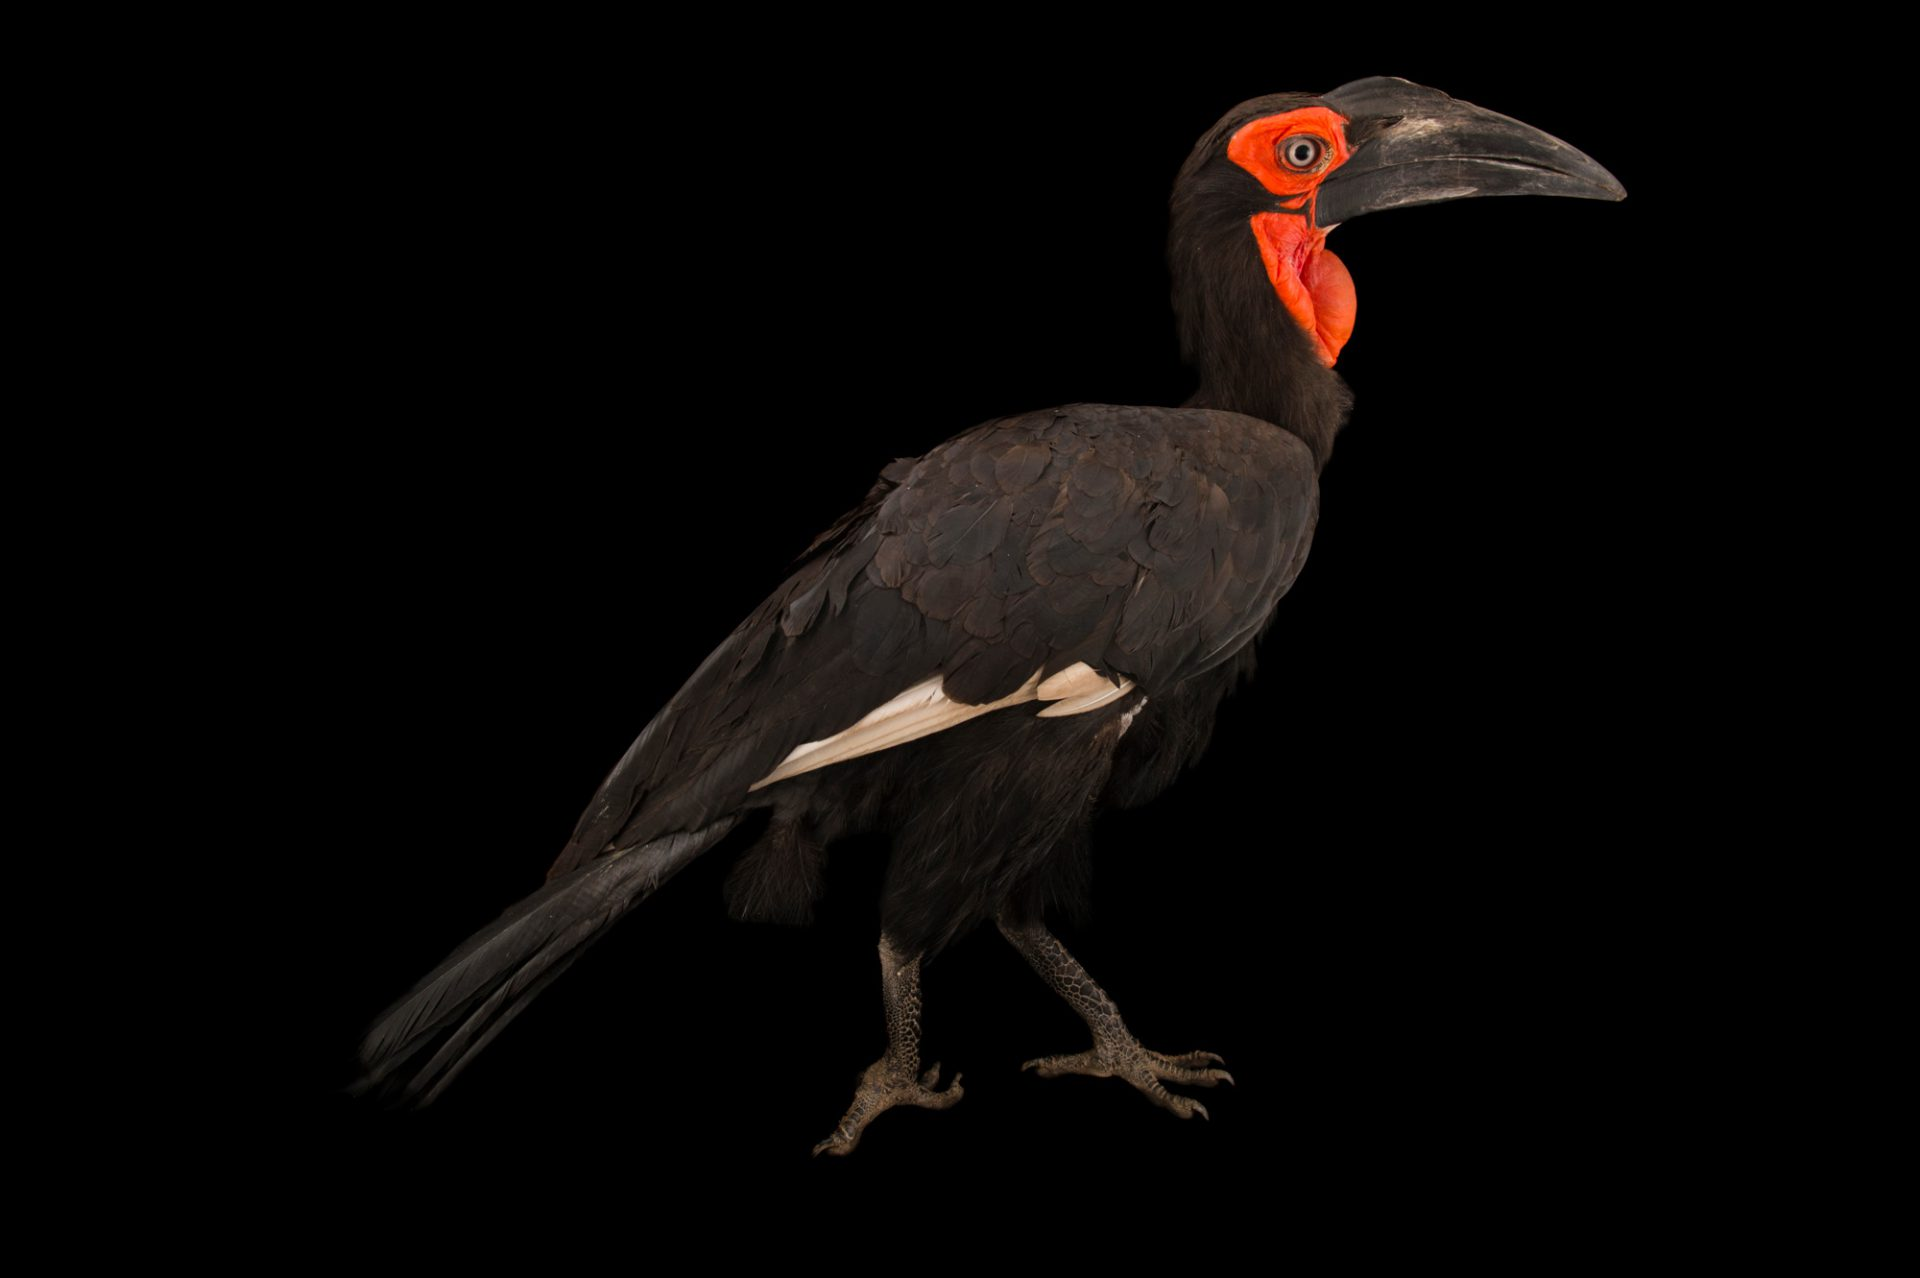 Photo: Southern ground hornbill (Bucorvus leadbeateri) from Parc des Oiseaux in Villars Les Dombes, France.